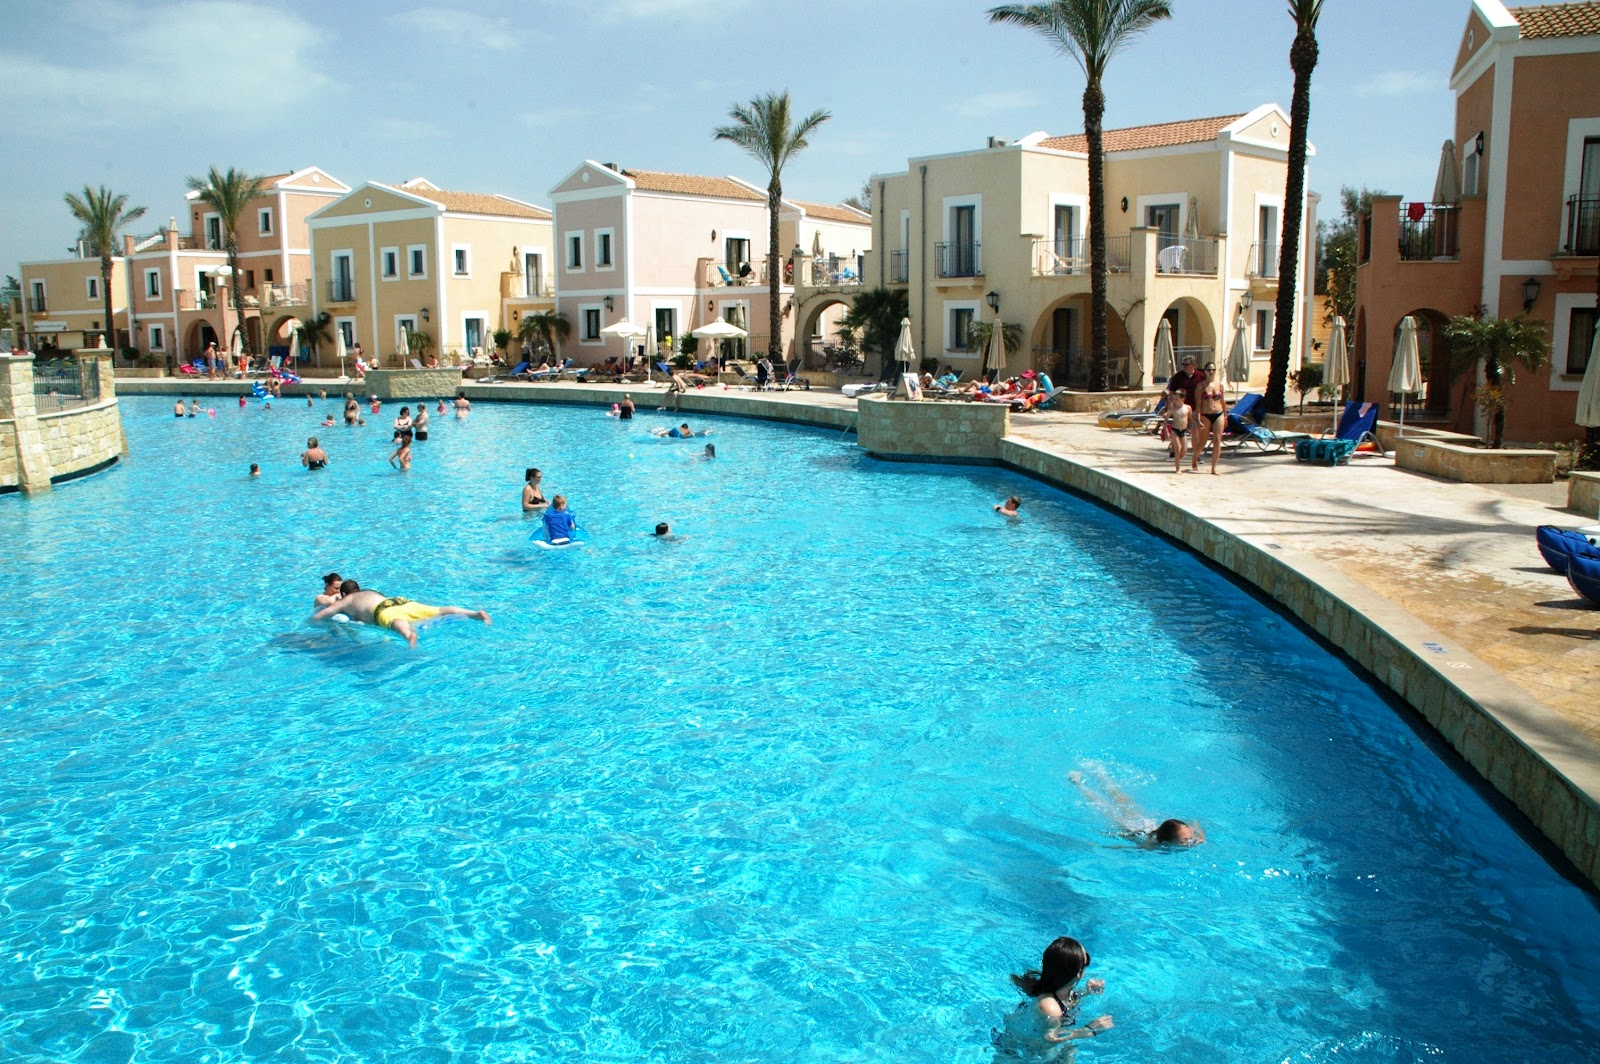 Aliathon holiday village official blog the largest pool in cyprus for Largest swimming pool in the us